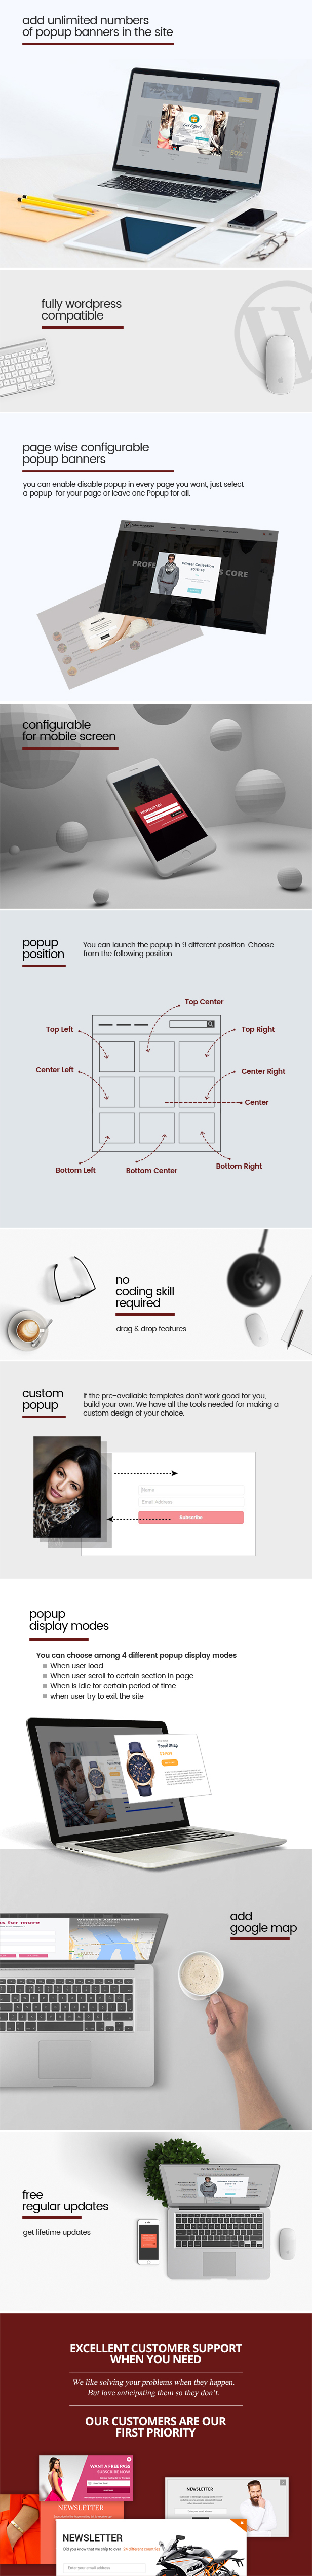 popup-banner WP Popup Banners Pro - Ultimate popup plugin for WordPress (Interface Elements)